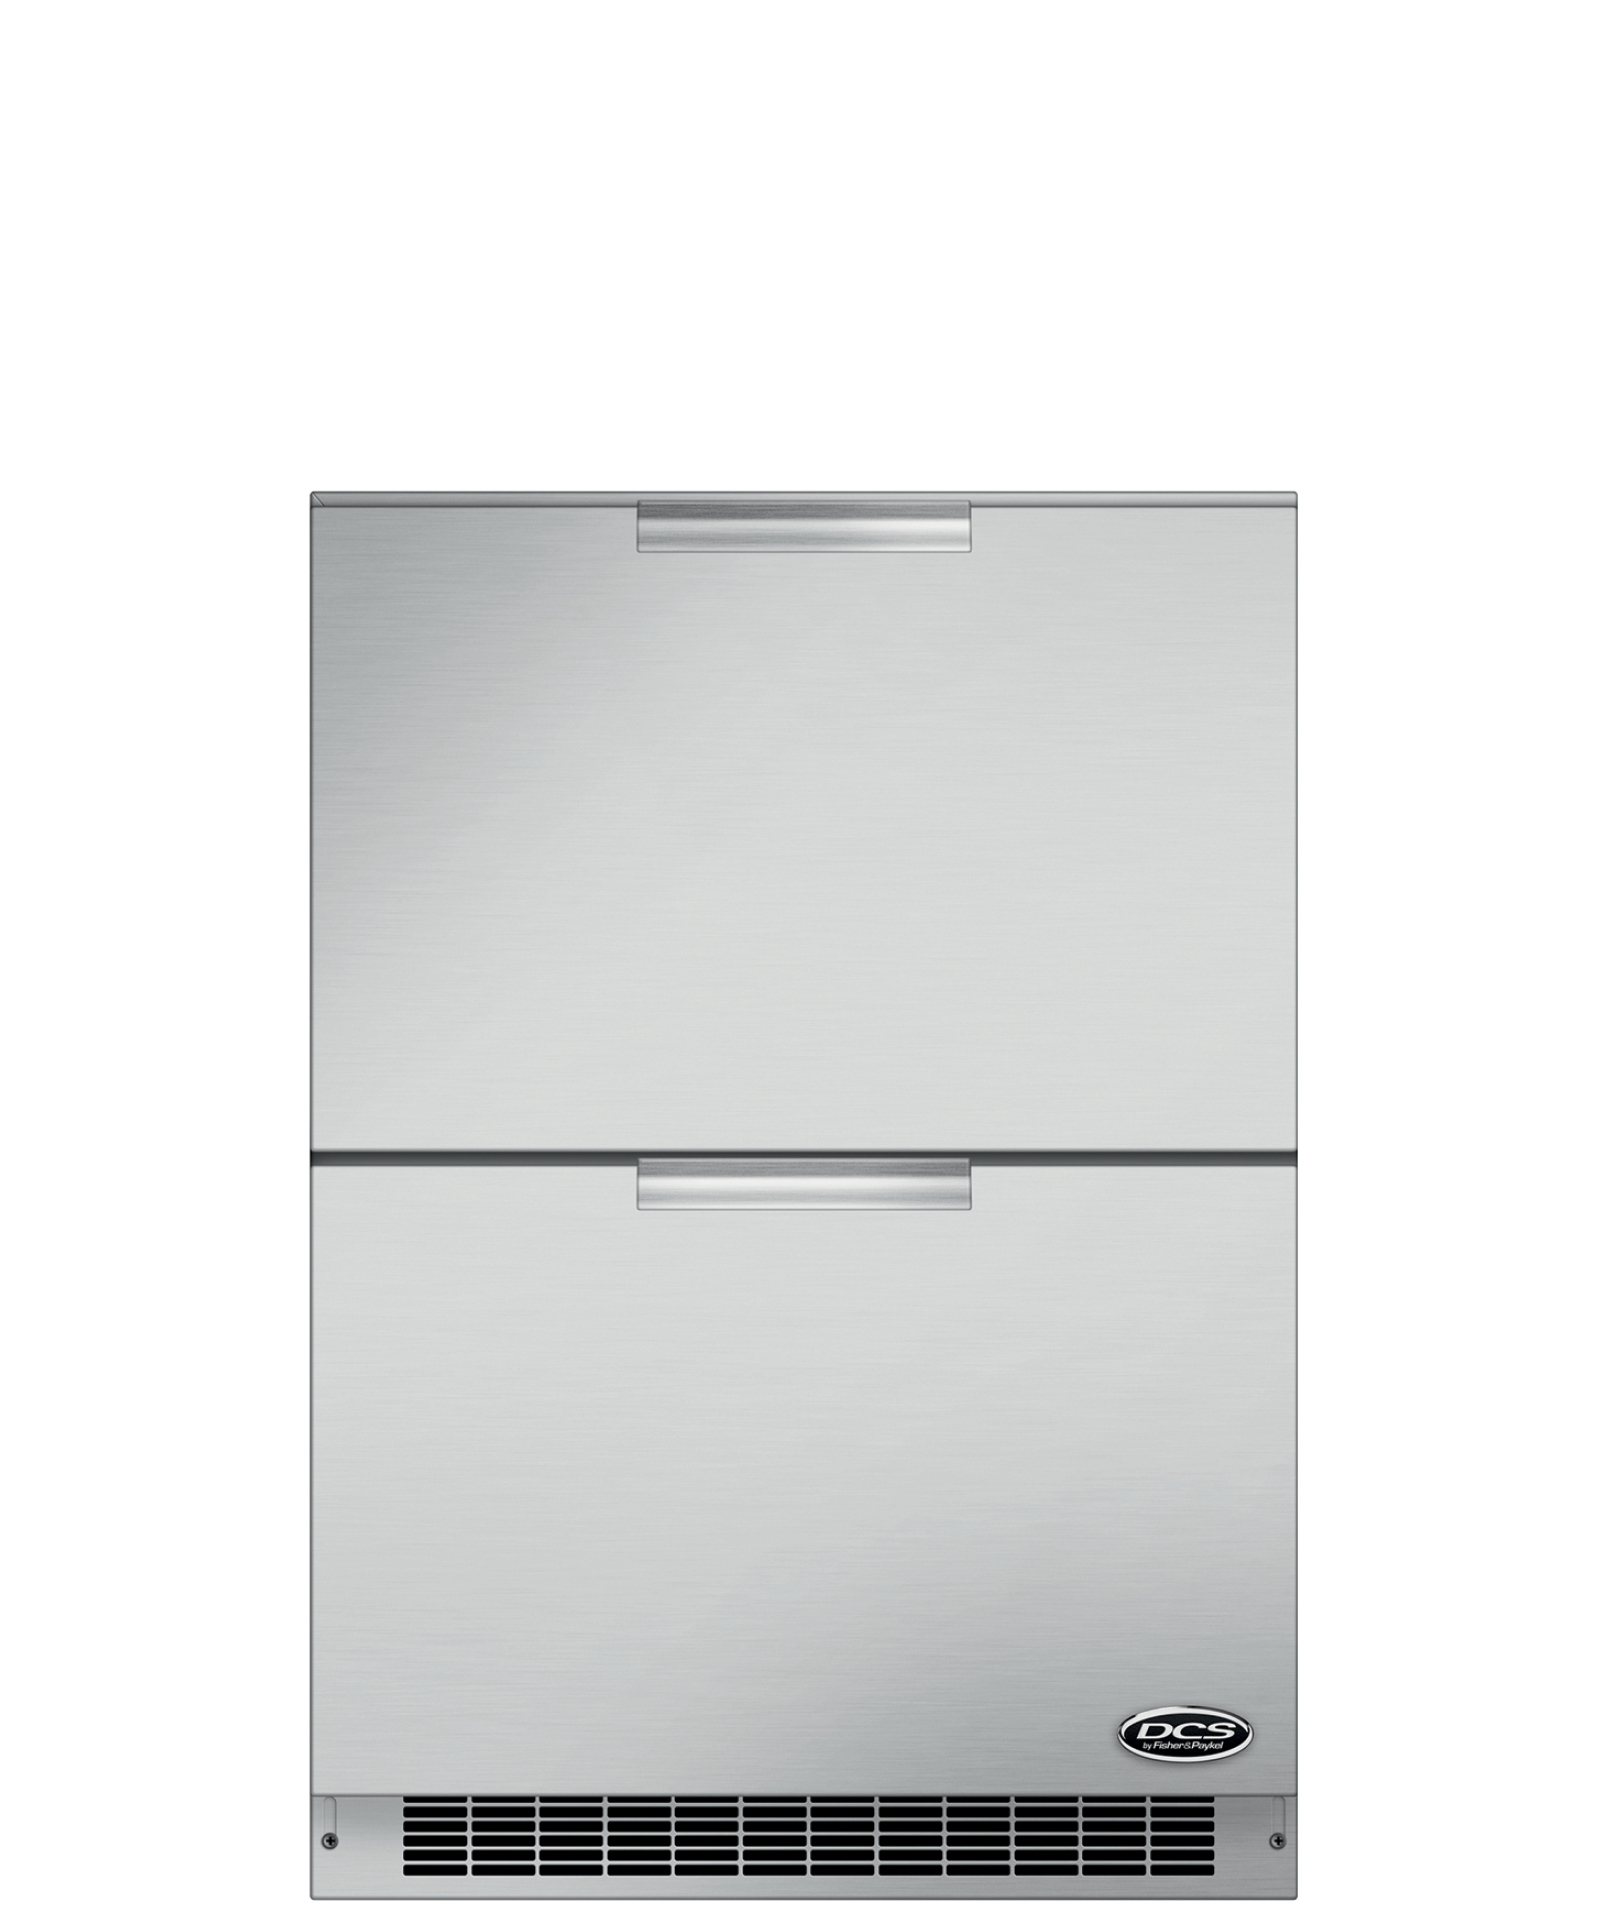 "DCS 24"" Outdoor Refrigerator Drawers"